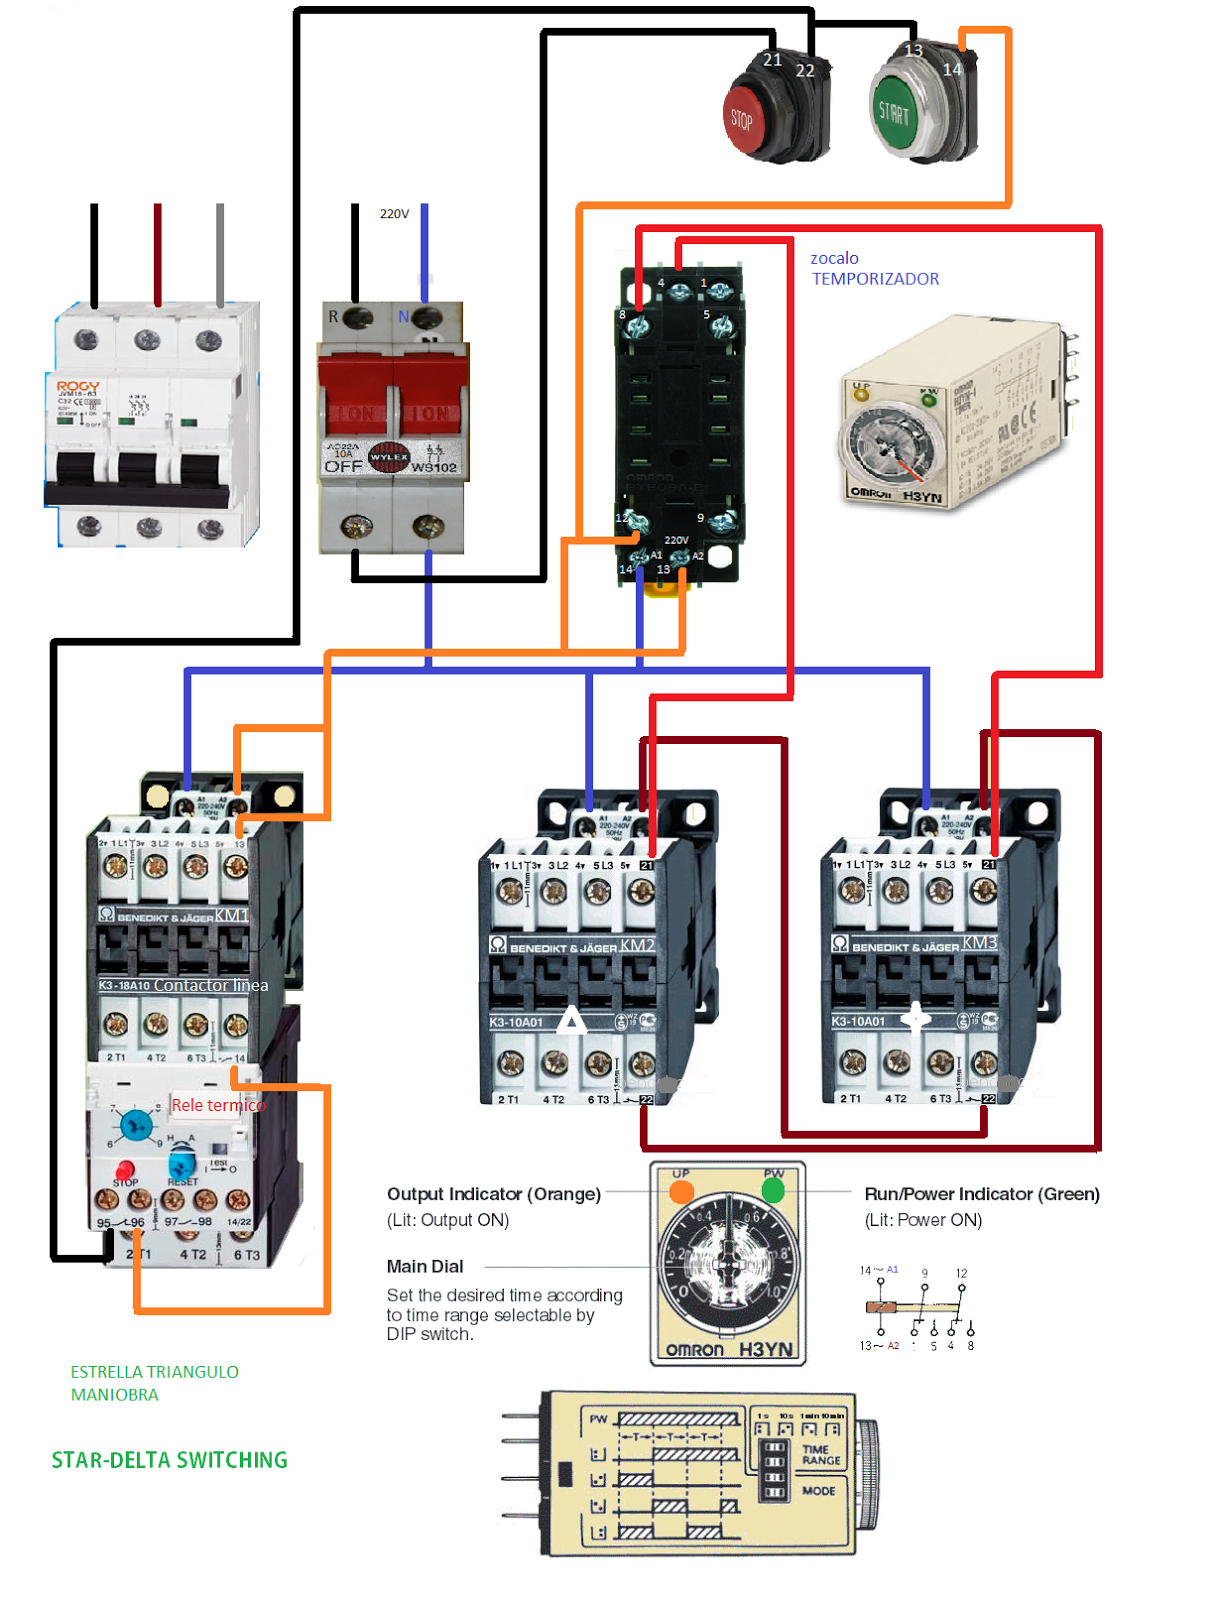 medium resolution of star delta switching electrical engineering blog electrical circuit diagram electrical plan electrical engineering